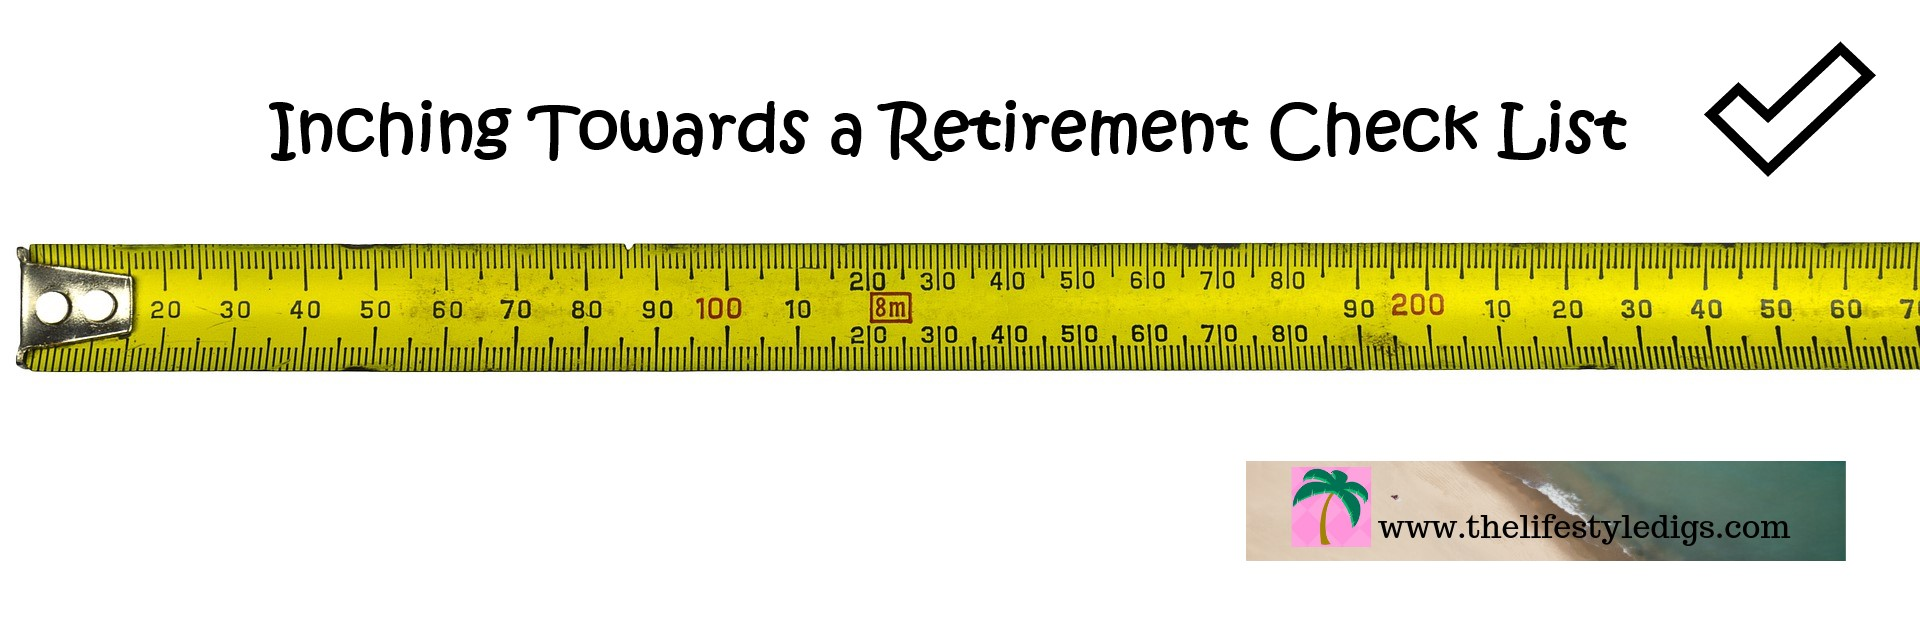 Inching Towards a Retirement Check List